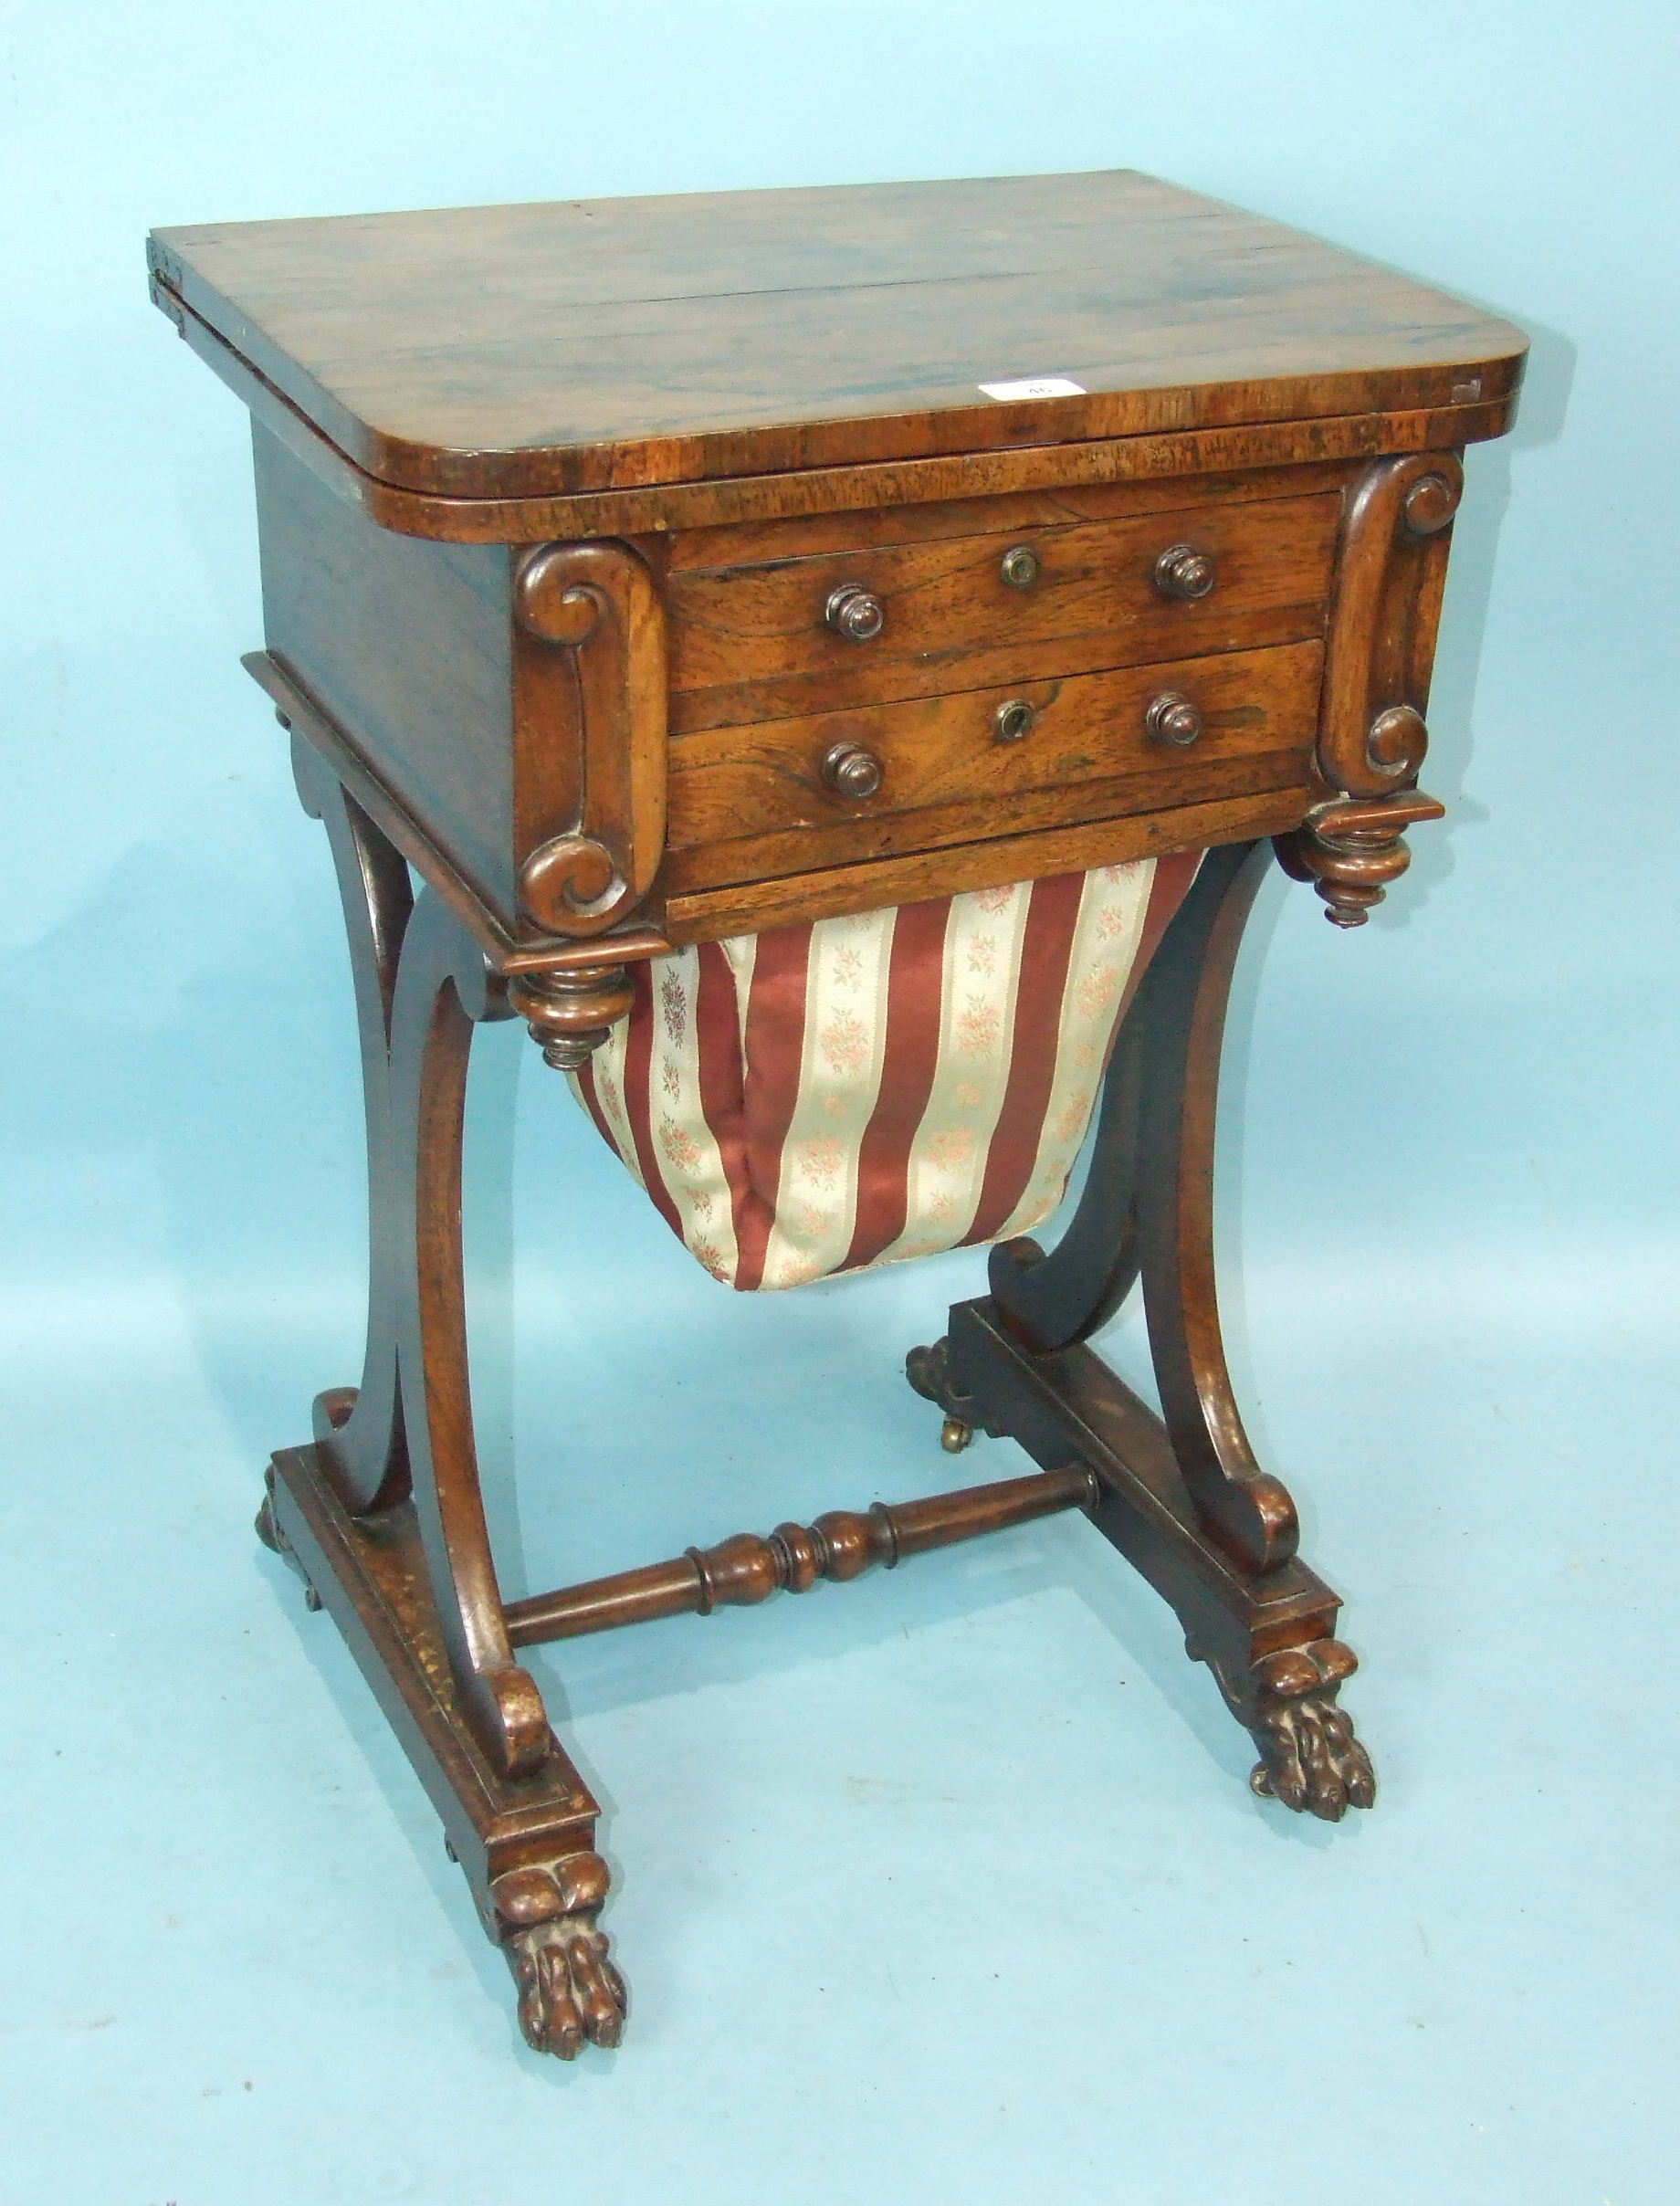 An early-19th century rosewood games and work table, the folding swivel top with satinwood and ebony